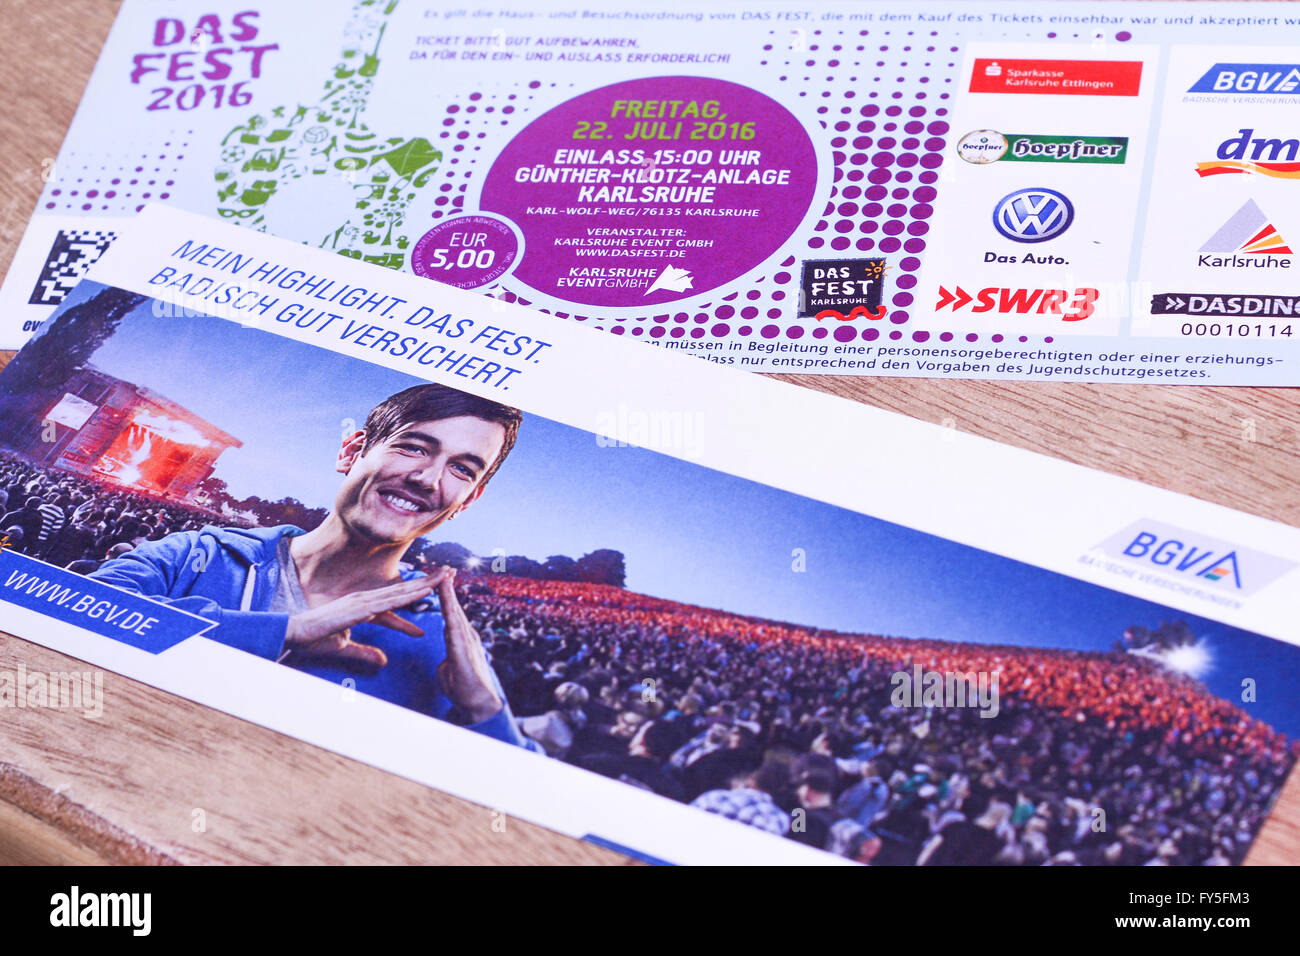 Karlsruhe, Baden Wuerttemberg, Germany - April 18, 2016: Tickets to Das Fest 2016, - Stock Image